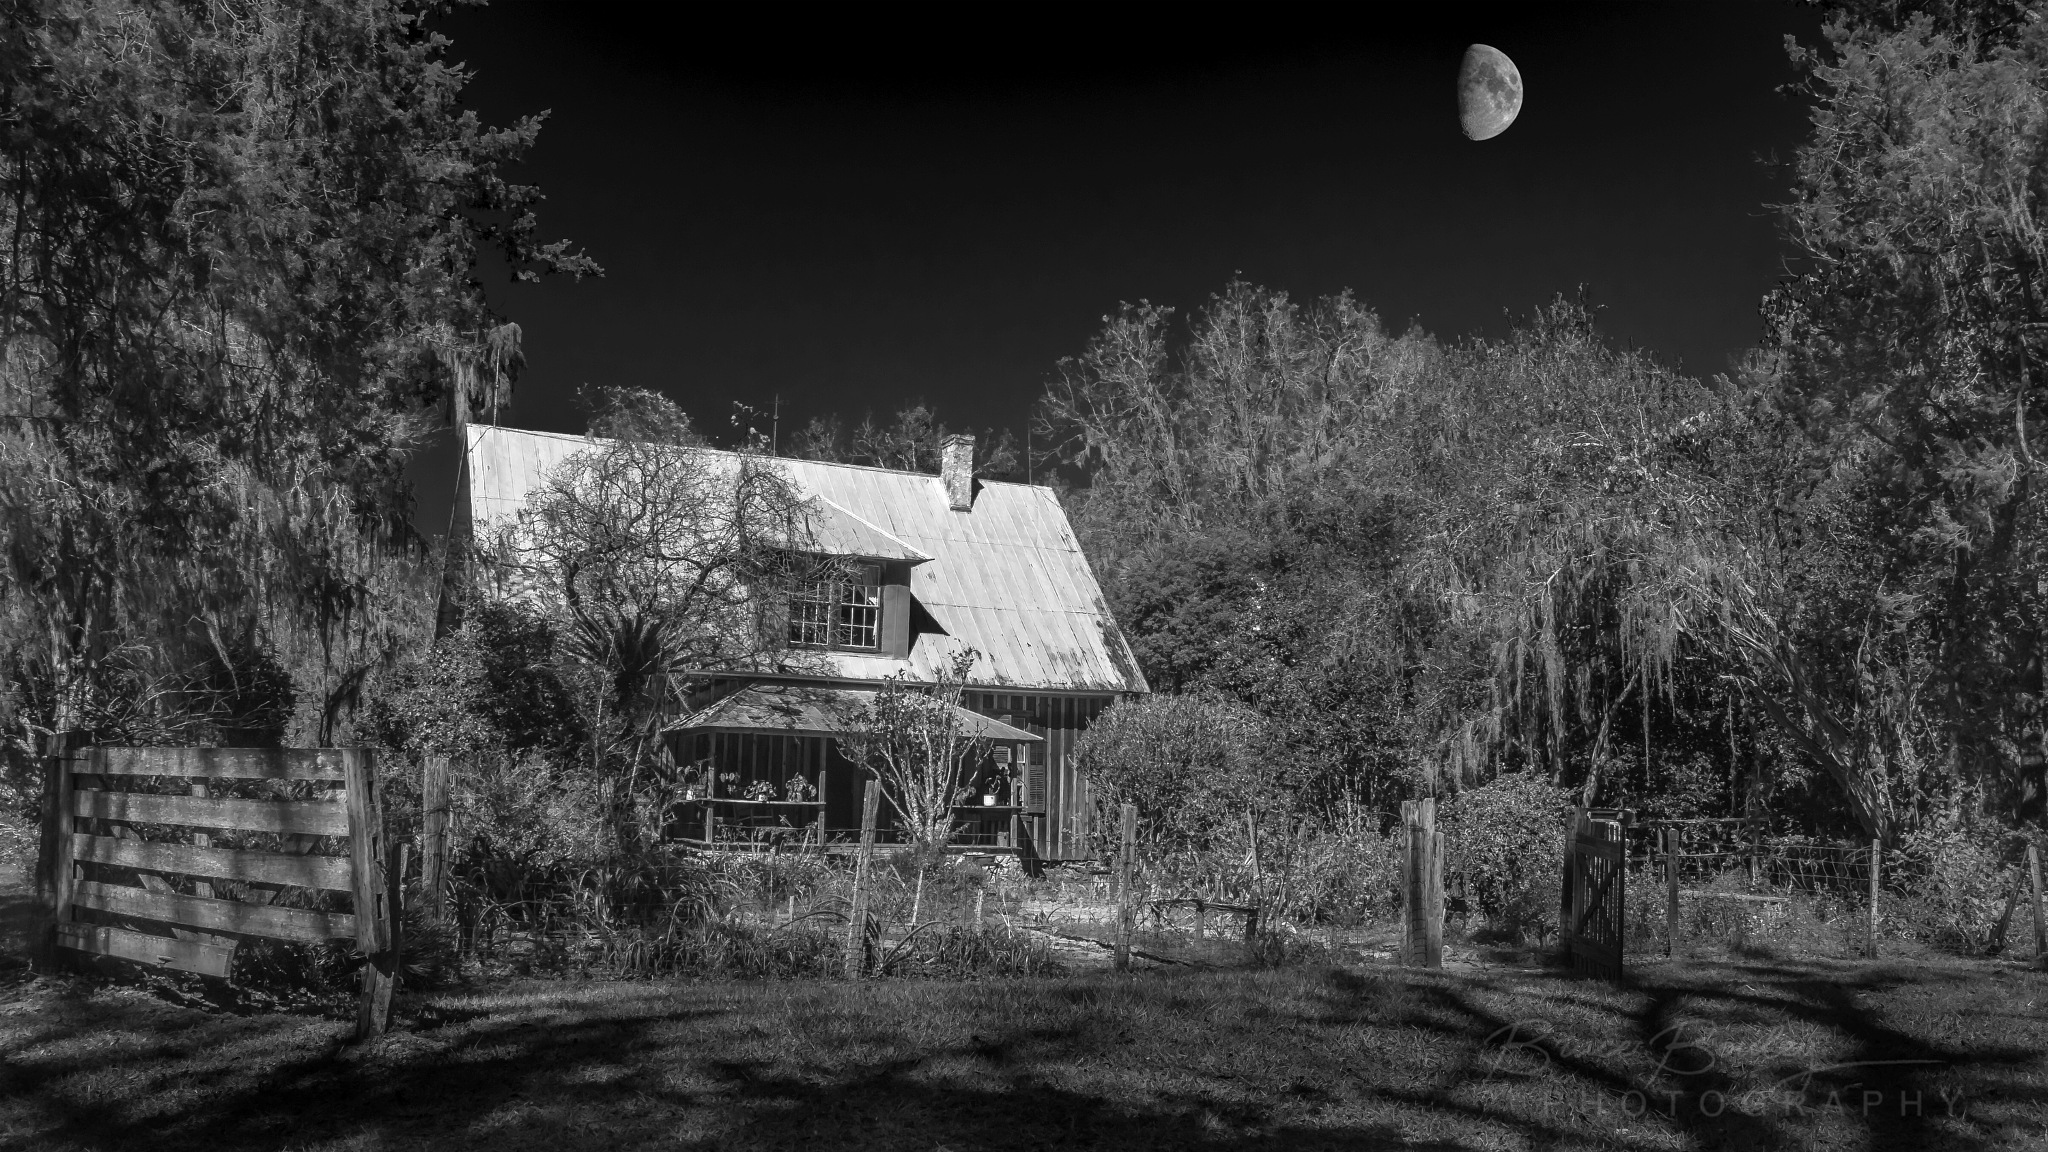 The Old Farm by Moonlight by bruce7485